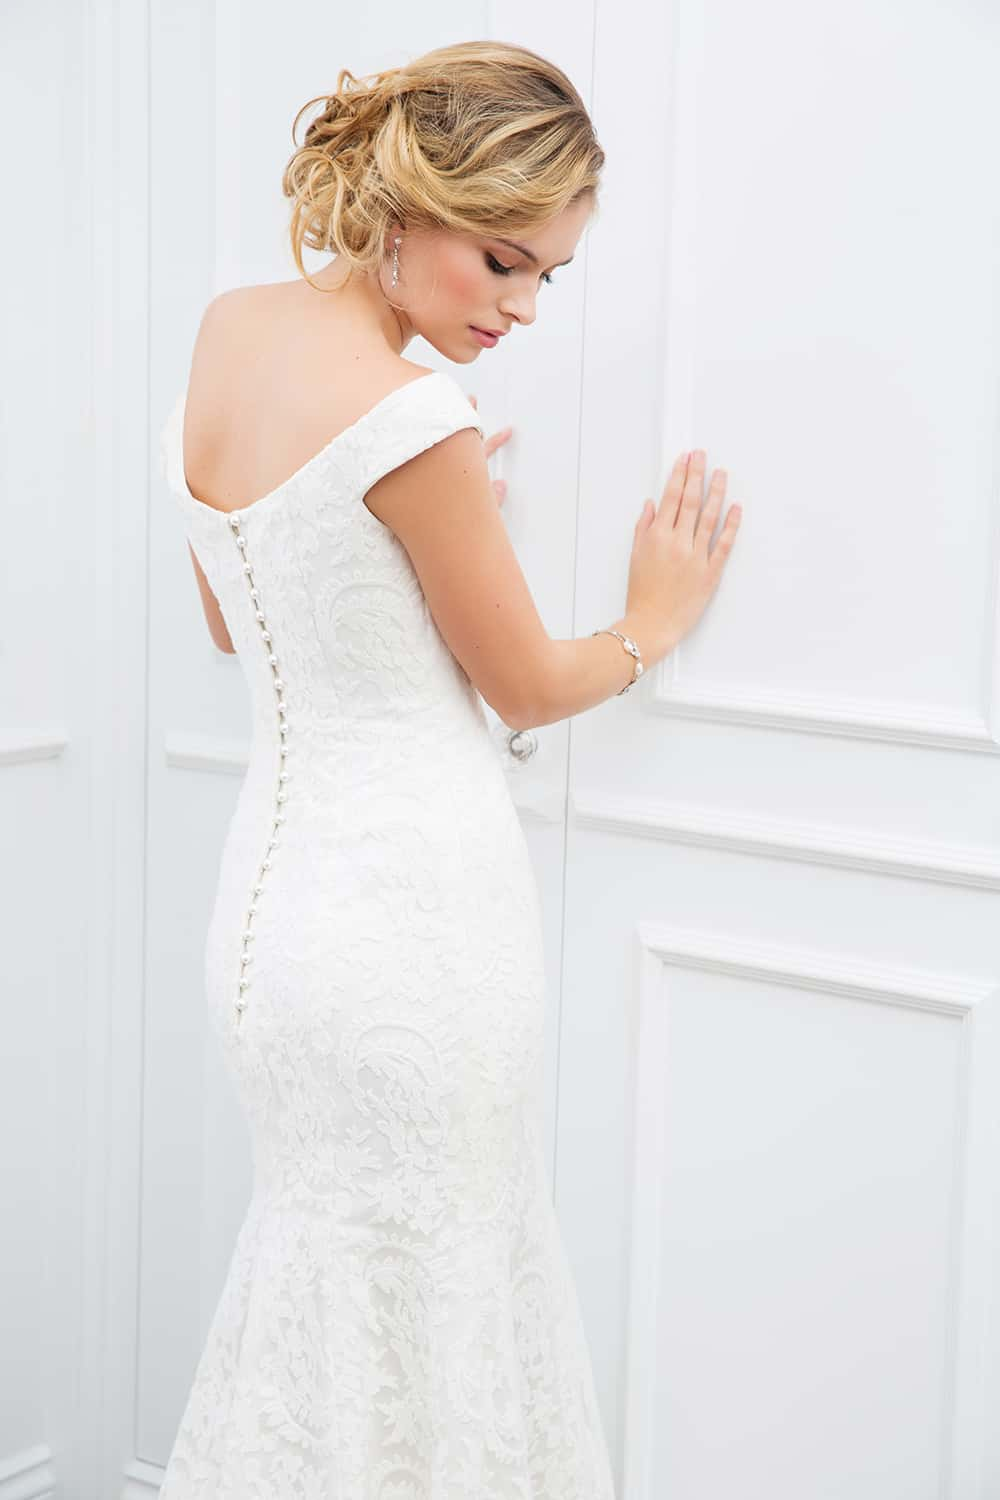 The Lena wedding gown, white off the shoulder with lace and button back from Wendy Makin Couture.